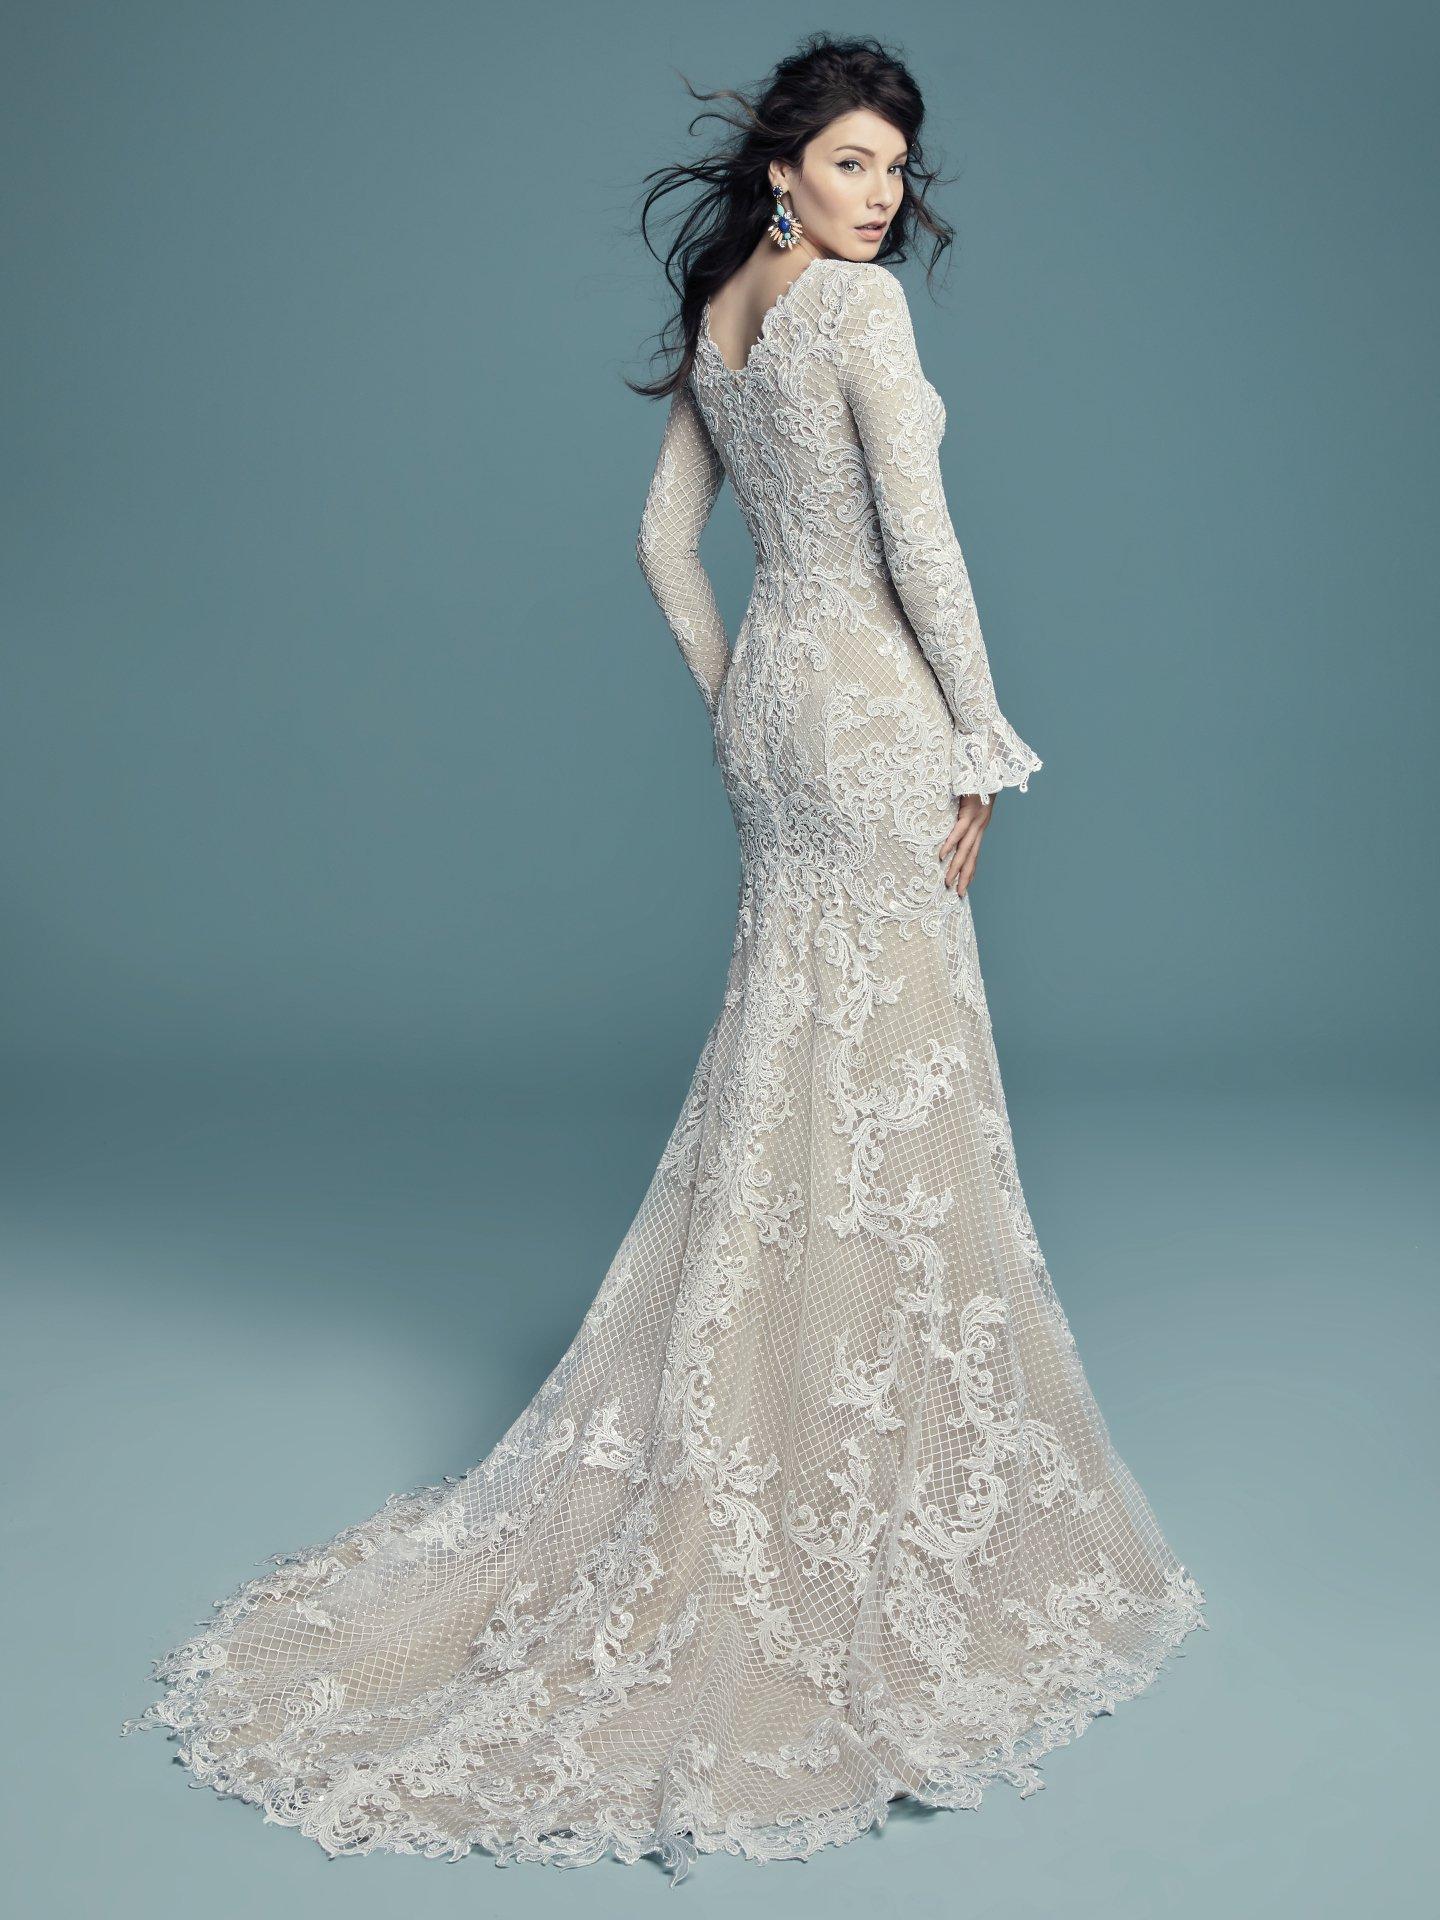 0ad249c9f7362 Long Sleeved Scoop Neckline Lace Fit And Flare Wedding Dress | Kleinfeld  Bridal